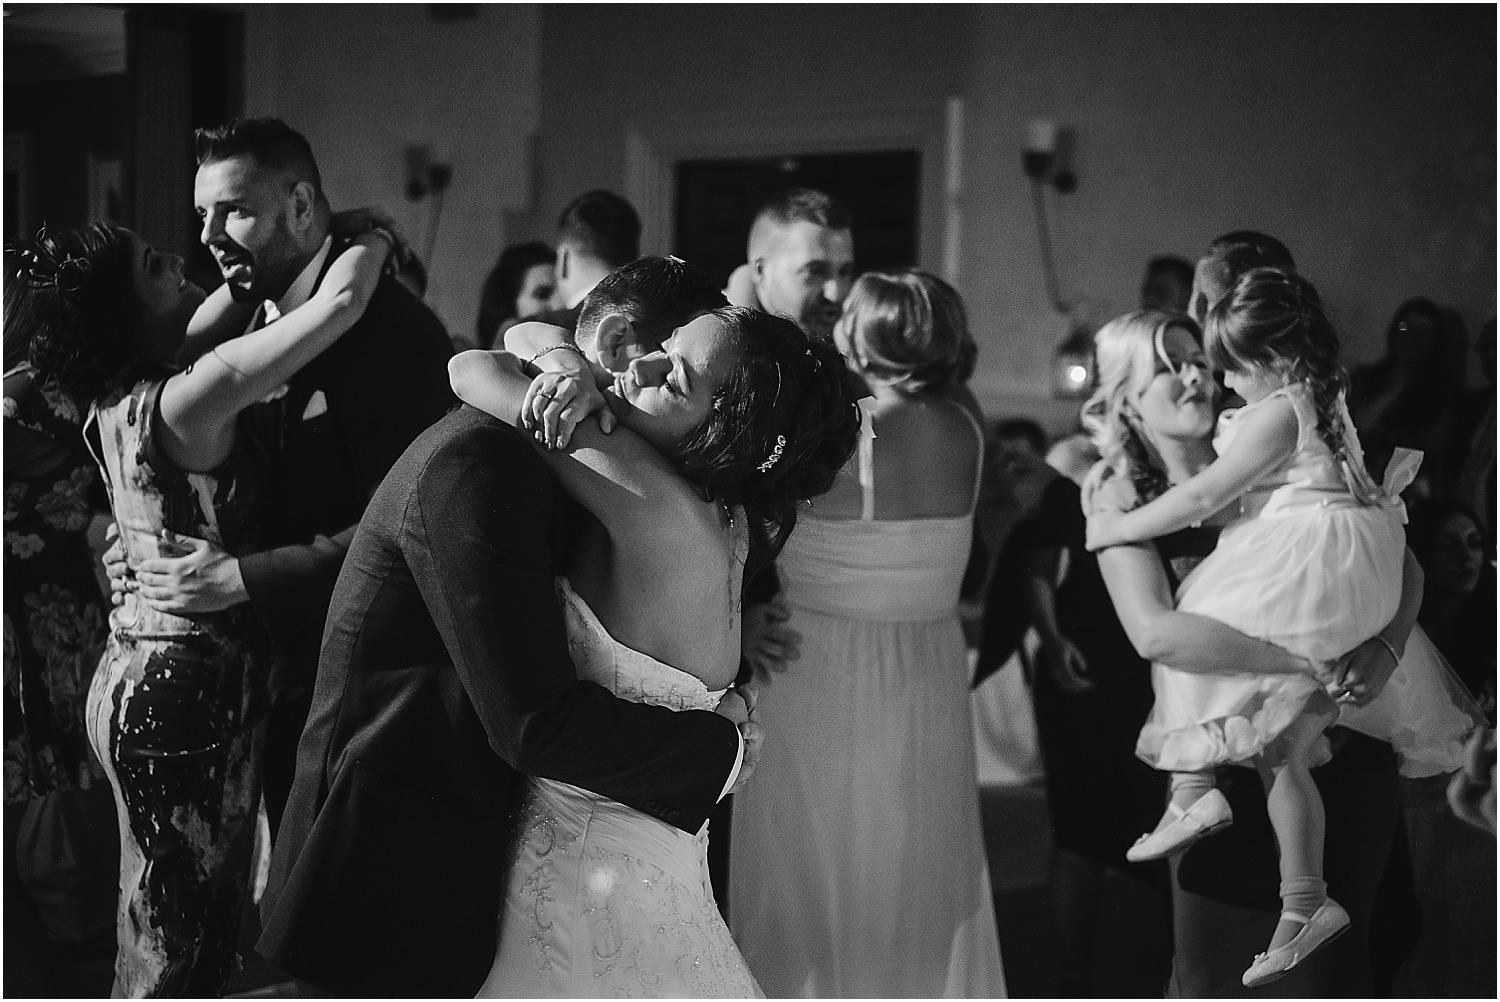 Wedding at Seaham Hall - wedding photography by www.2tonephotography.co.uk 082.jpg